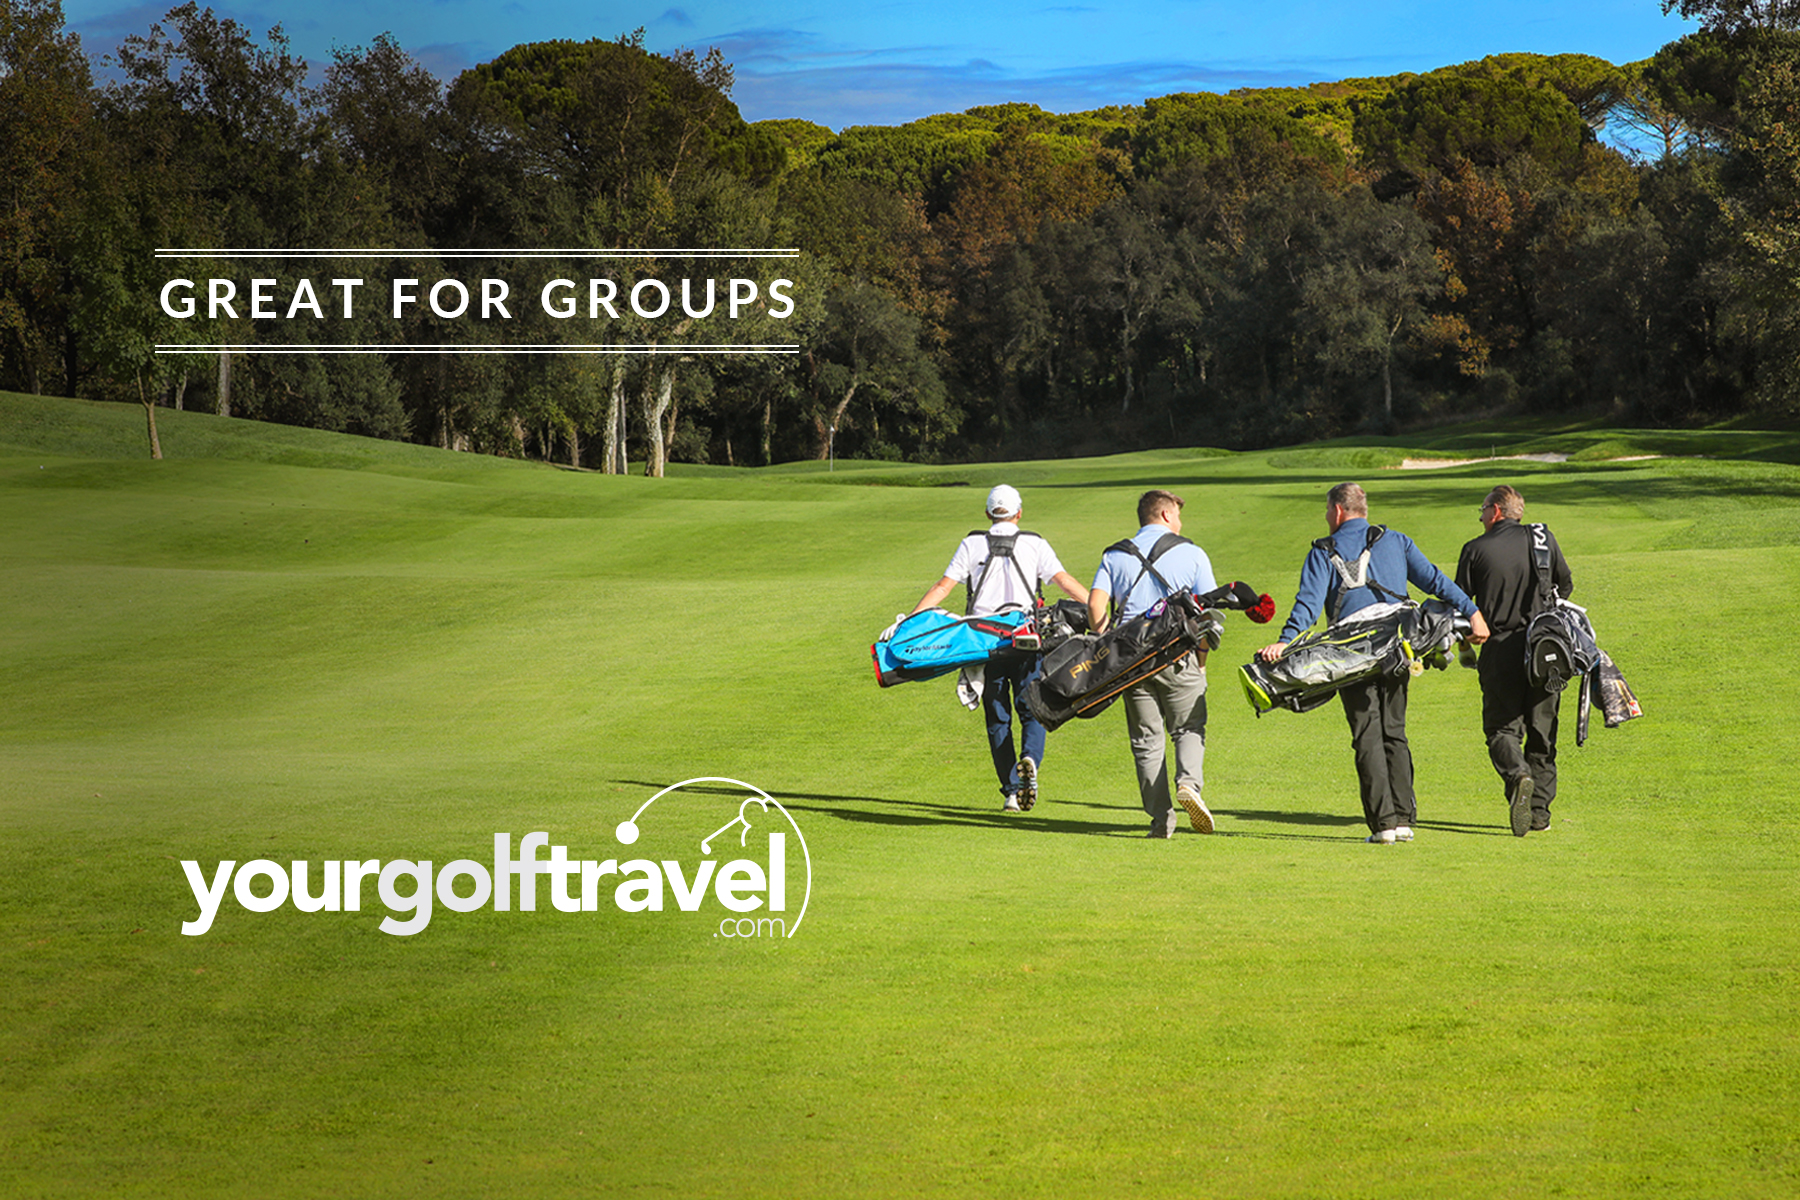 Your Golf Travel reward their groups in January